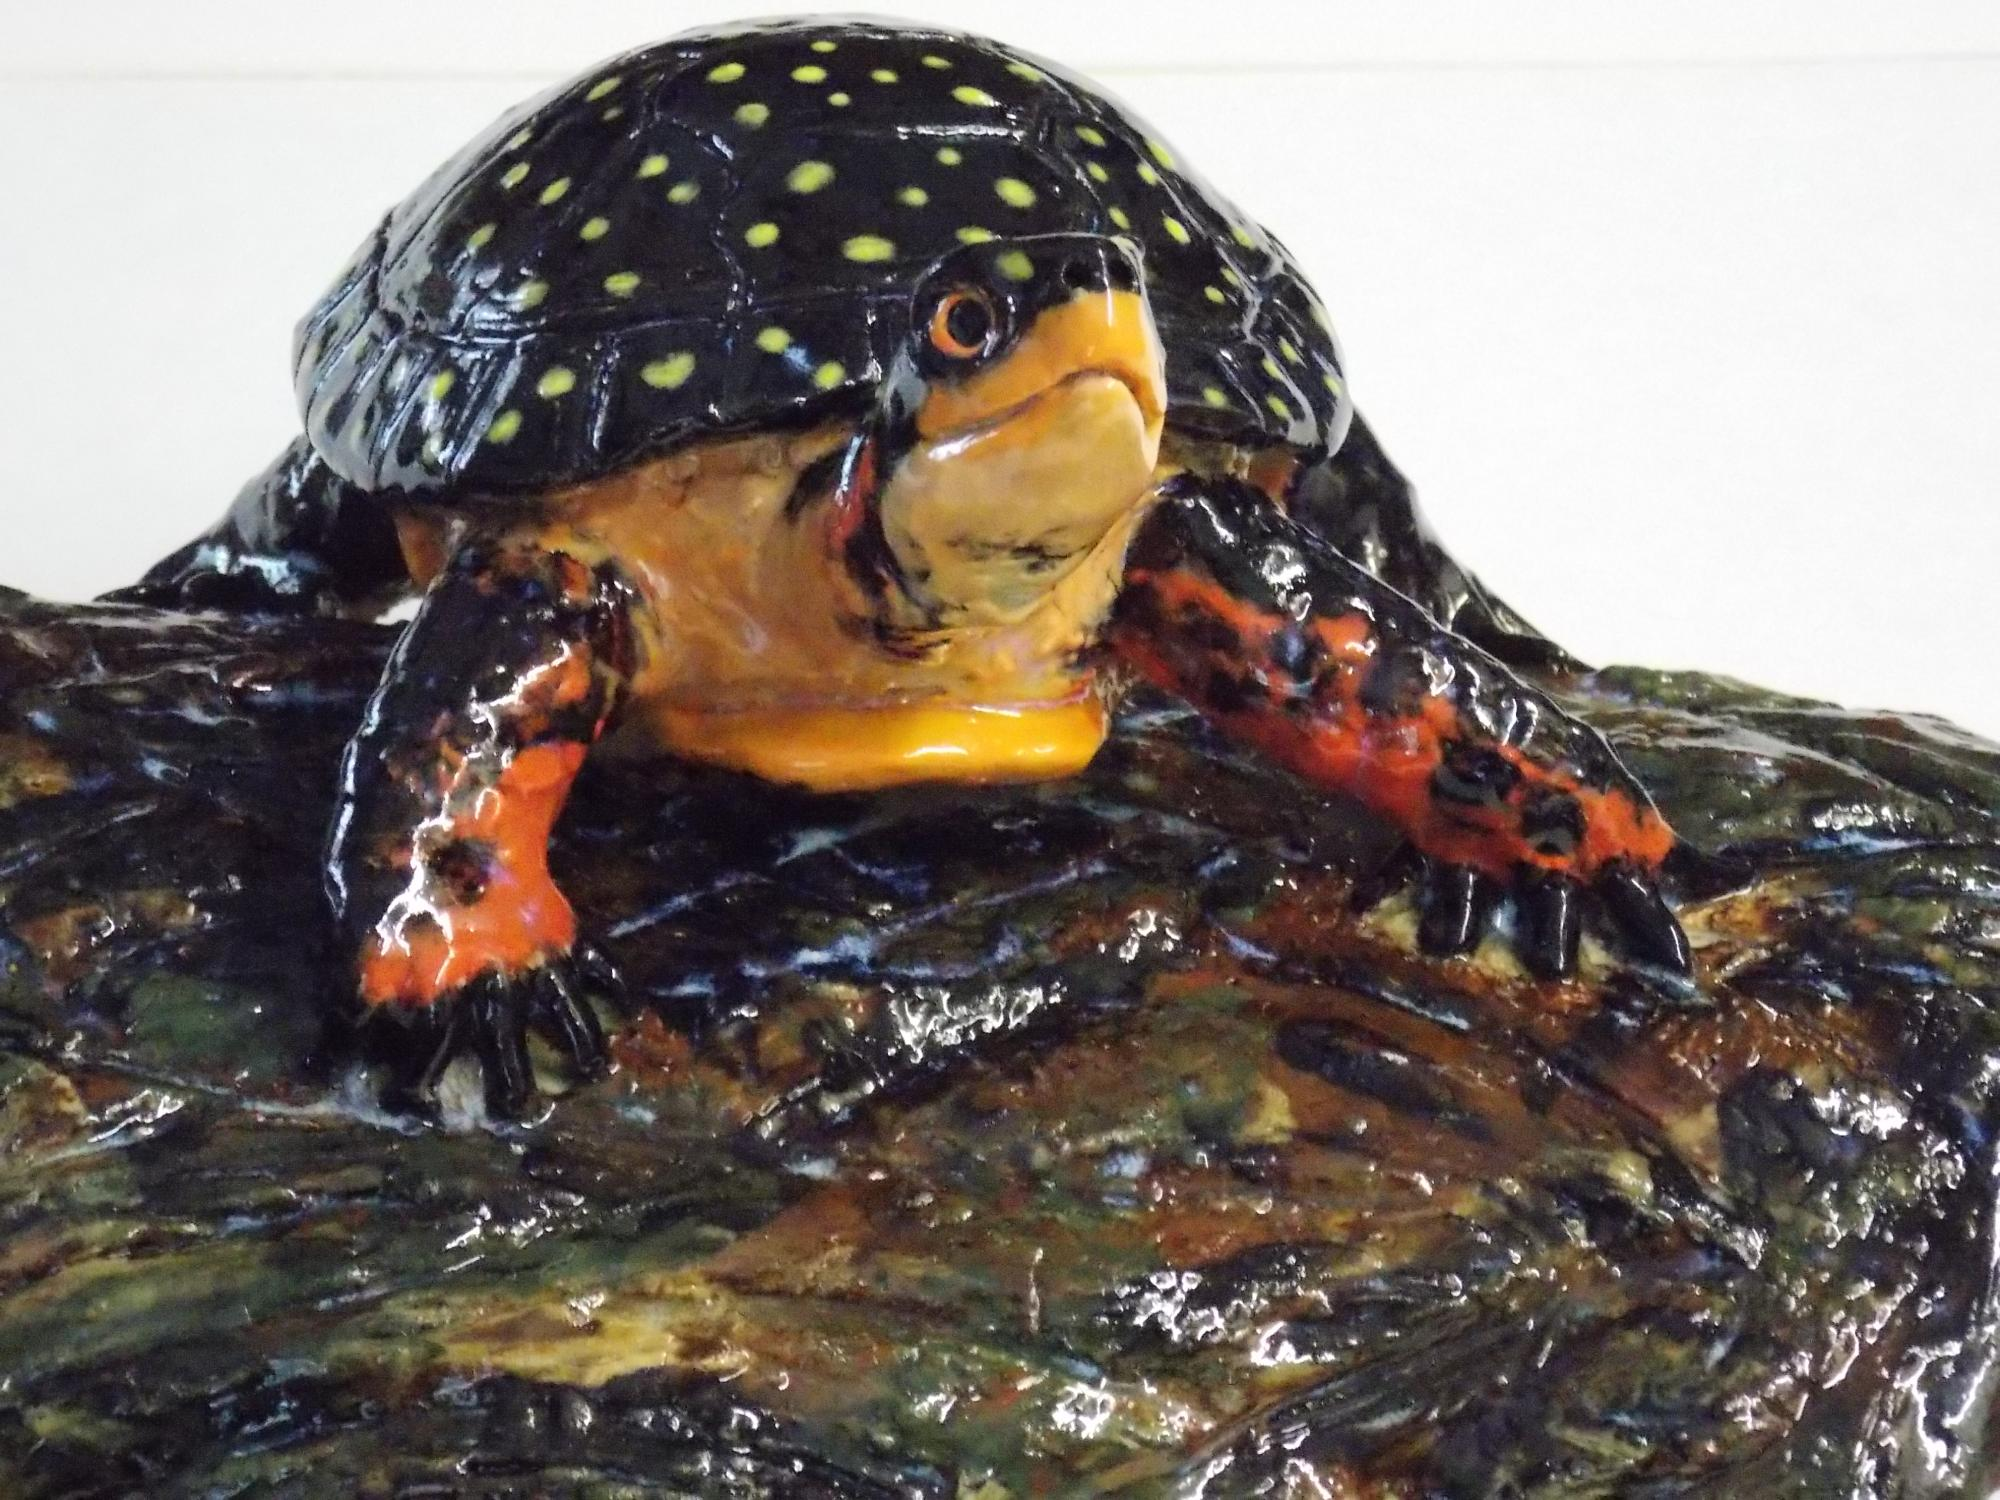 Spotted_Turtles_on_log__detail__Muhich_2015__cone_6_ceramic__16_x__8_x_6_inches.JPG